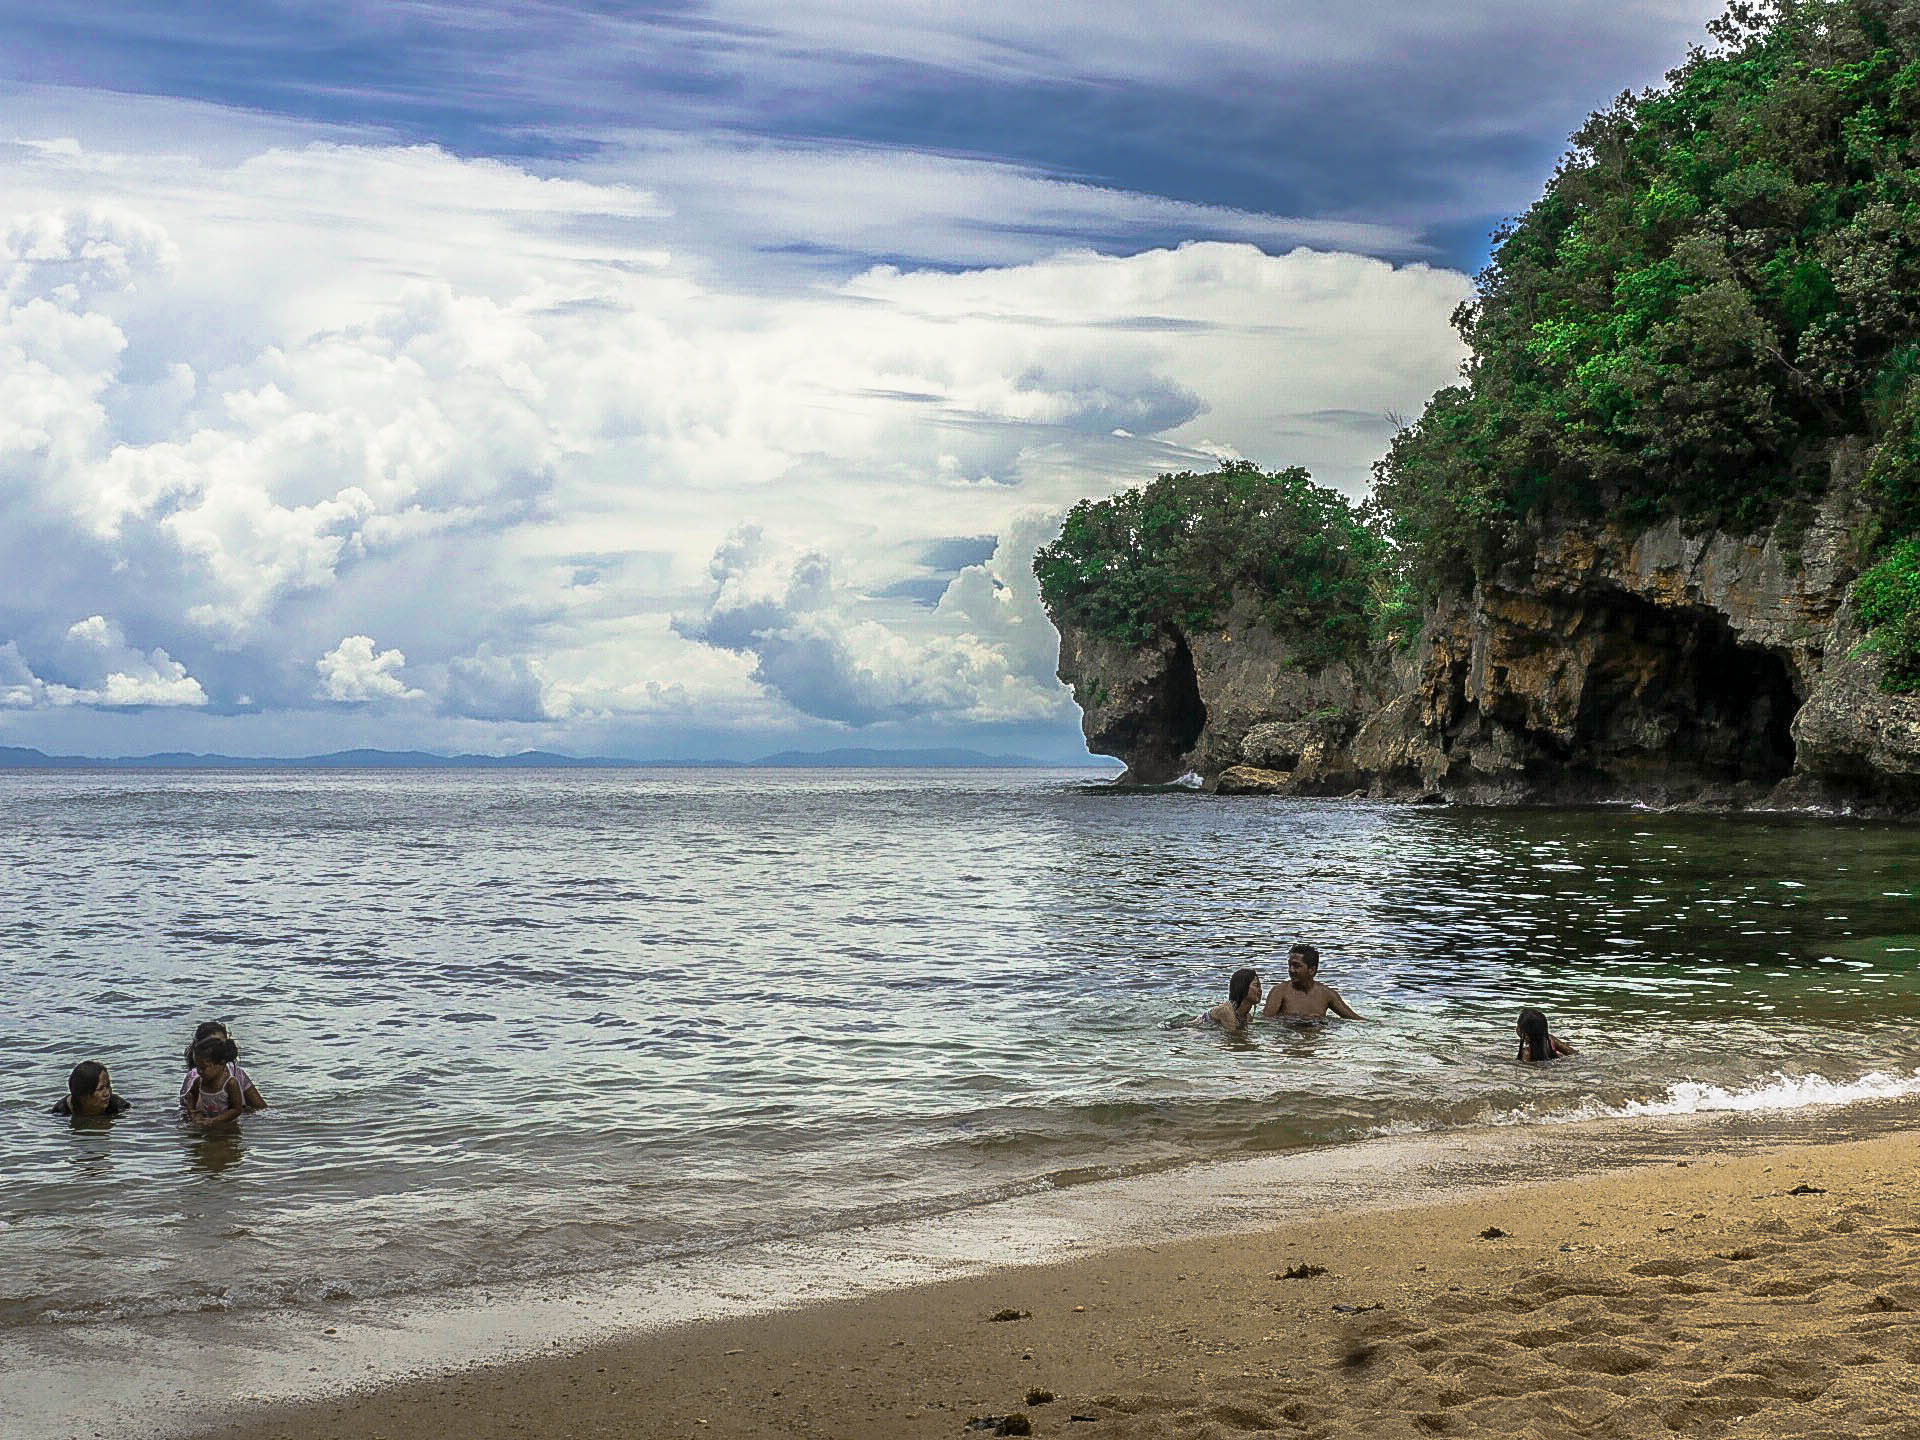 jesus face rock structure formation at talisoy beach in virac catanduanes philippines